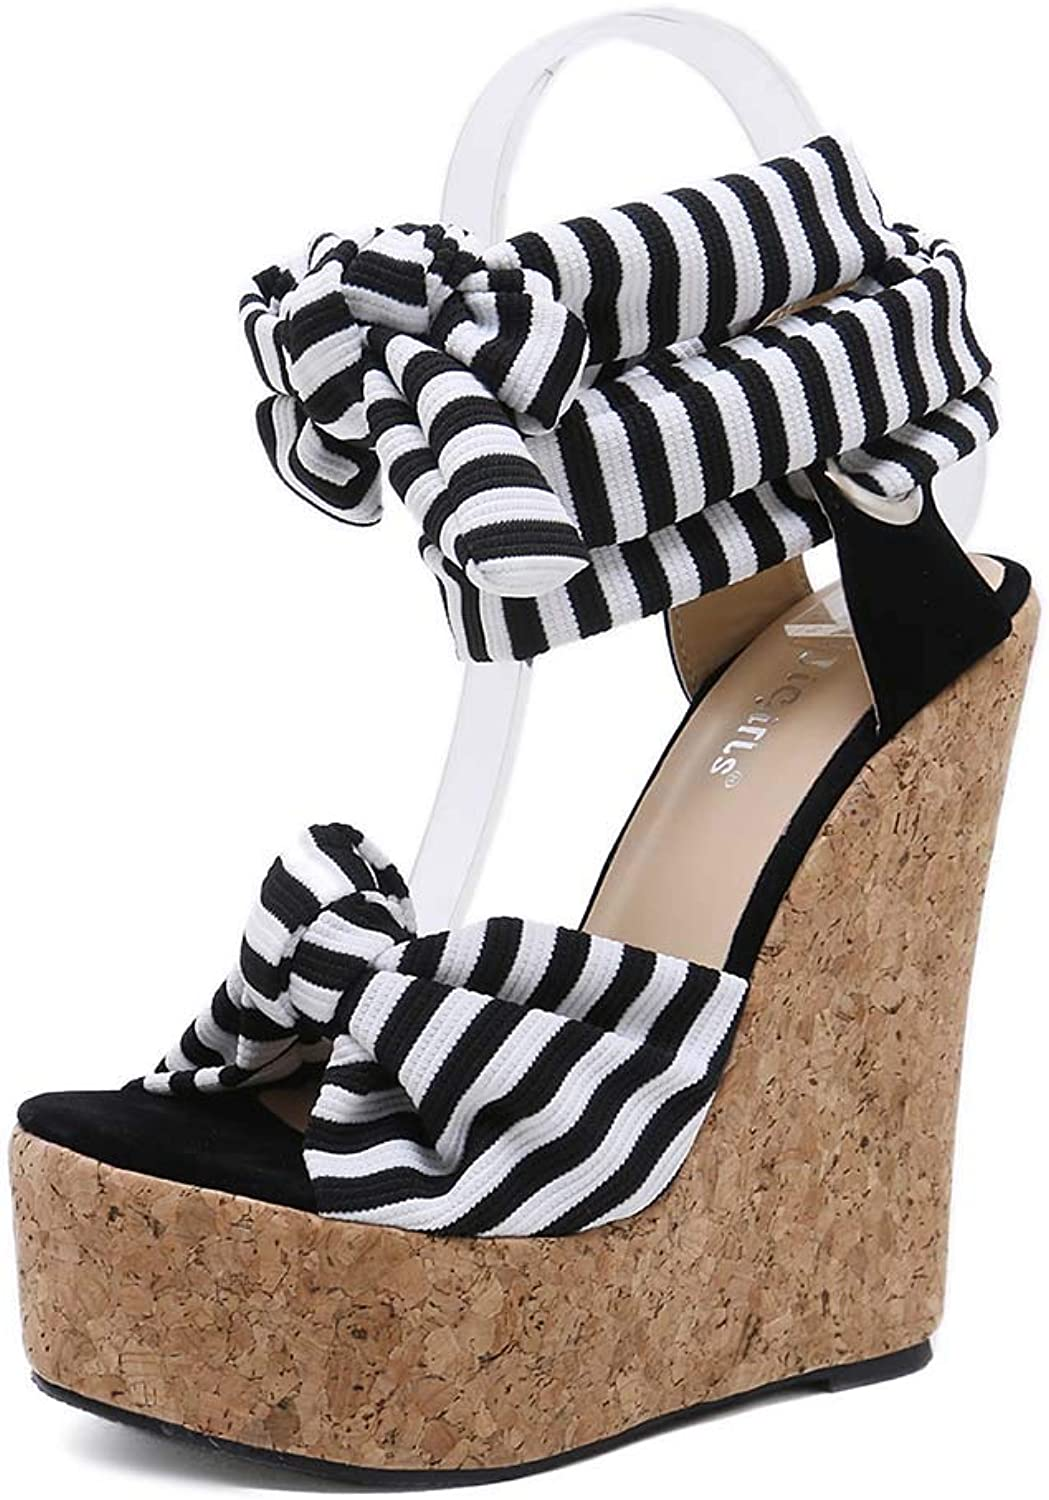 Womens high Heel shoes Waterproof Platform Wedge Sandals Striped lace-up Fashion shoes Summer